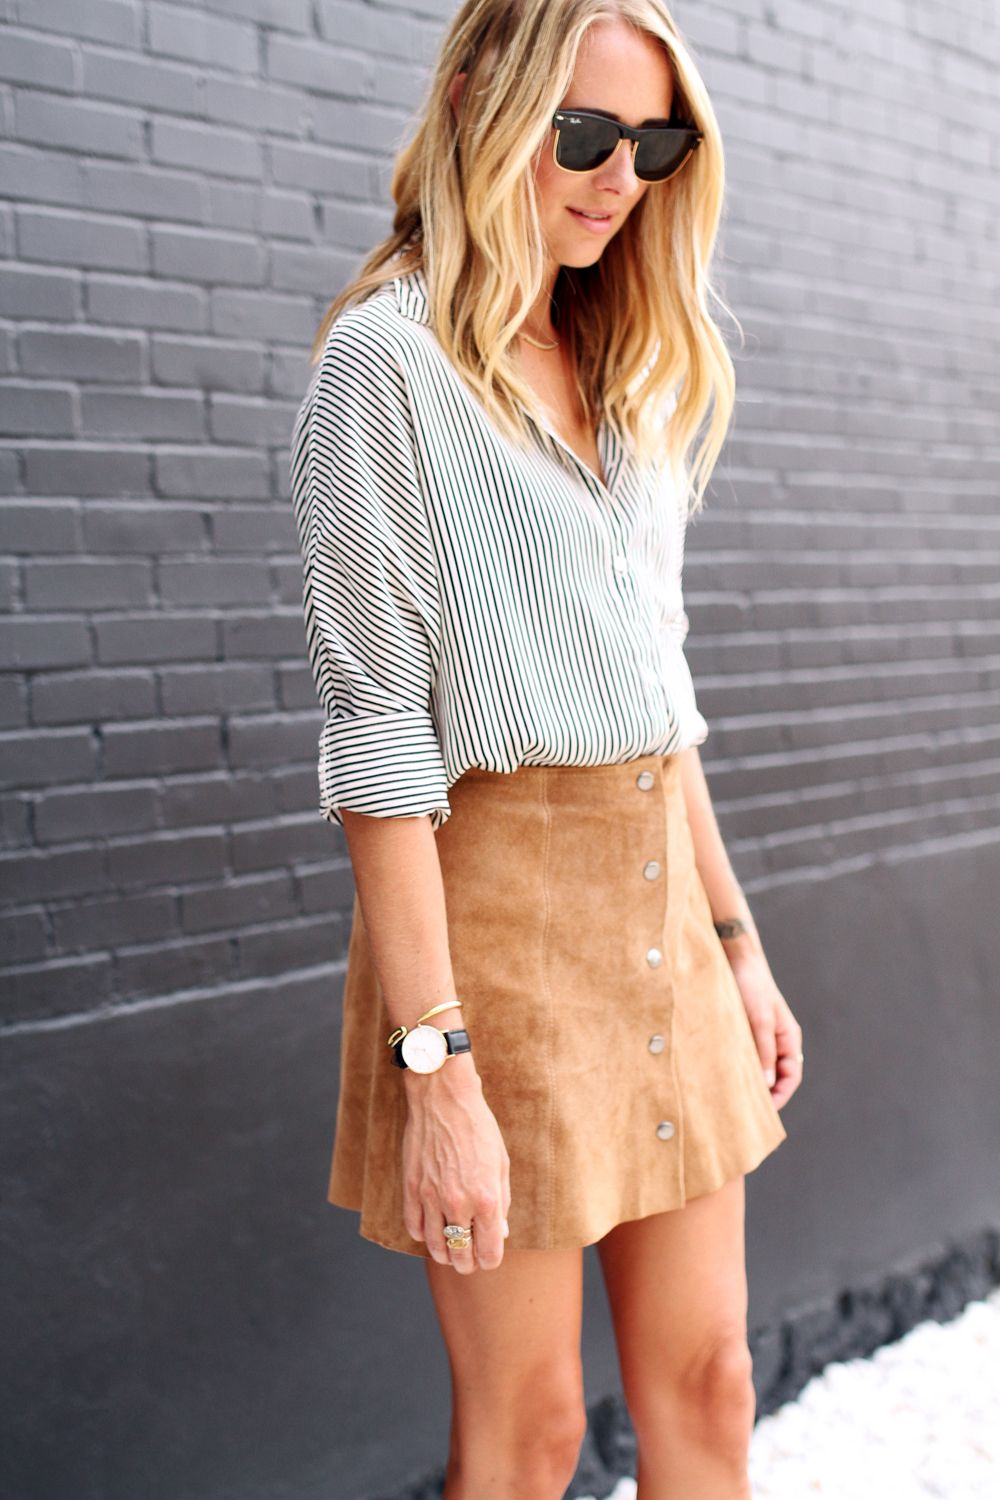 d3a7c8958dd fashion-jackson-rayban-sunglasses-topshop-tan-suede-button-front-skirt-black -and-white-stripe-shirt